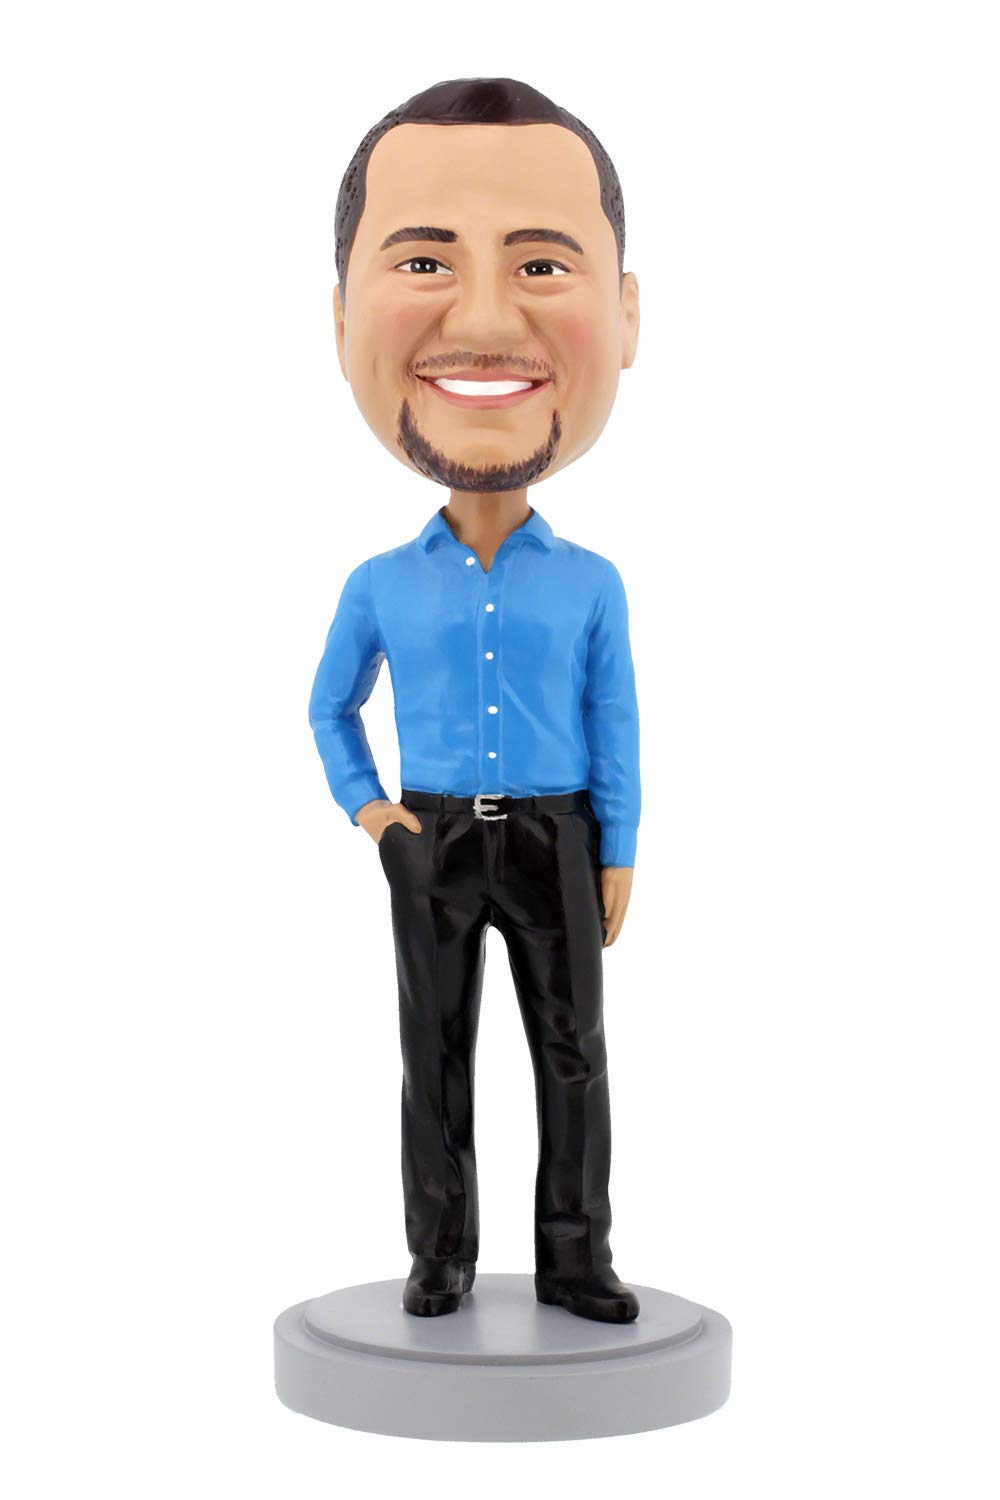 Custom Bobbleheads - Slender Male Executive with Hand in Pocket Body - Personalized Gifts